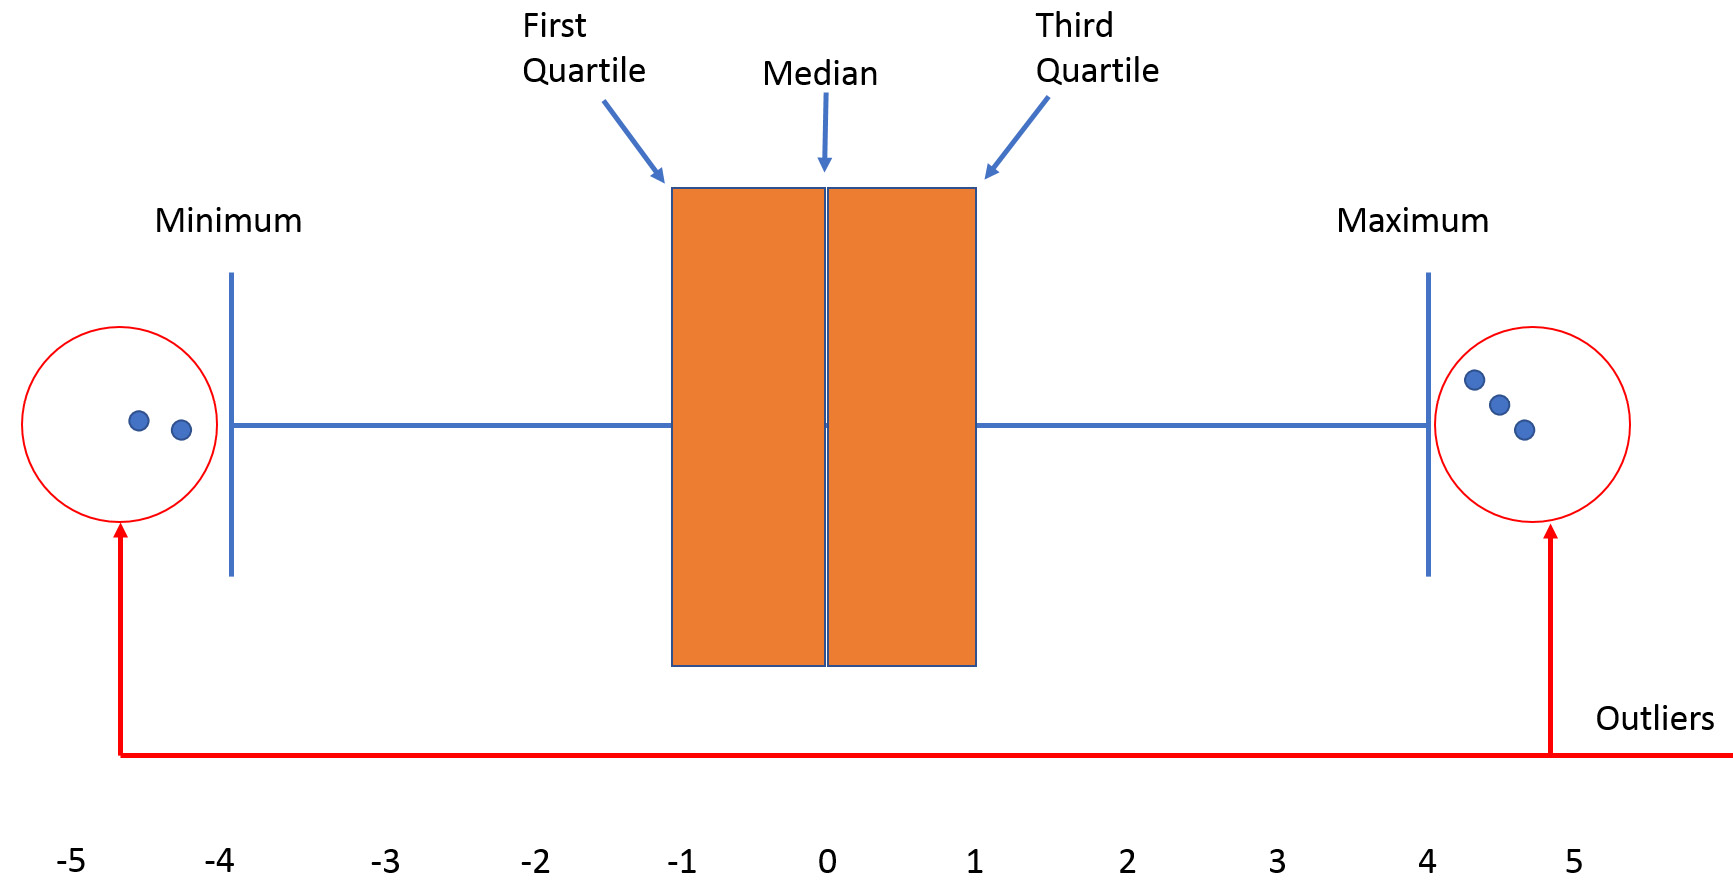 Figure 1.21: Sample of outliers in a box plot